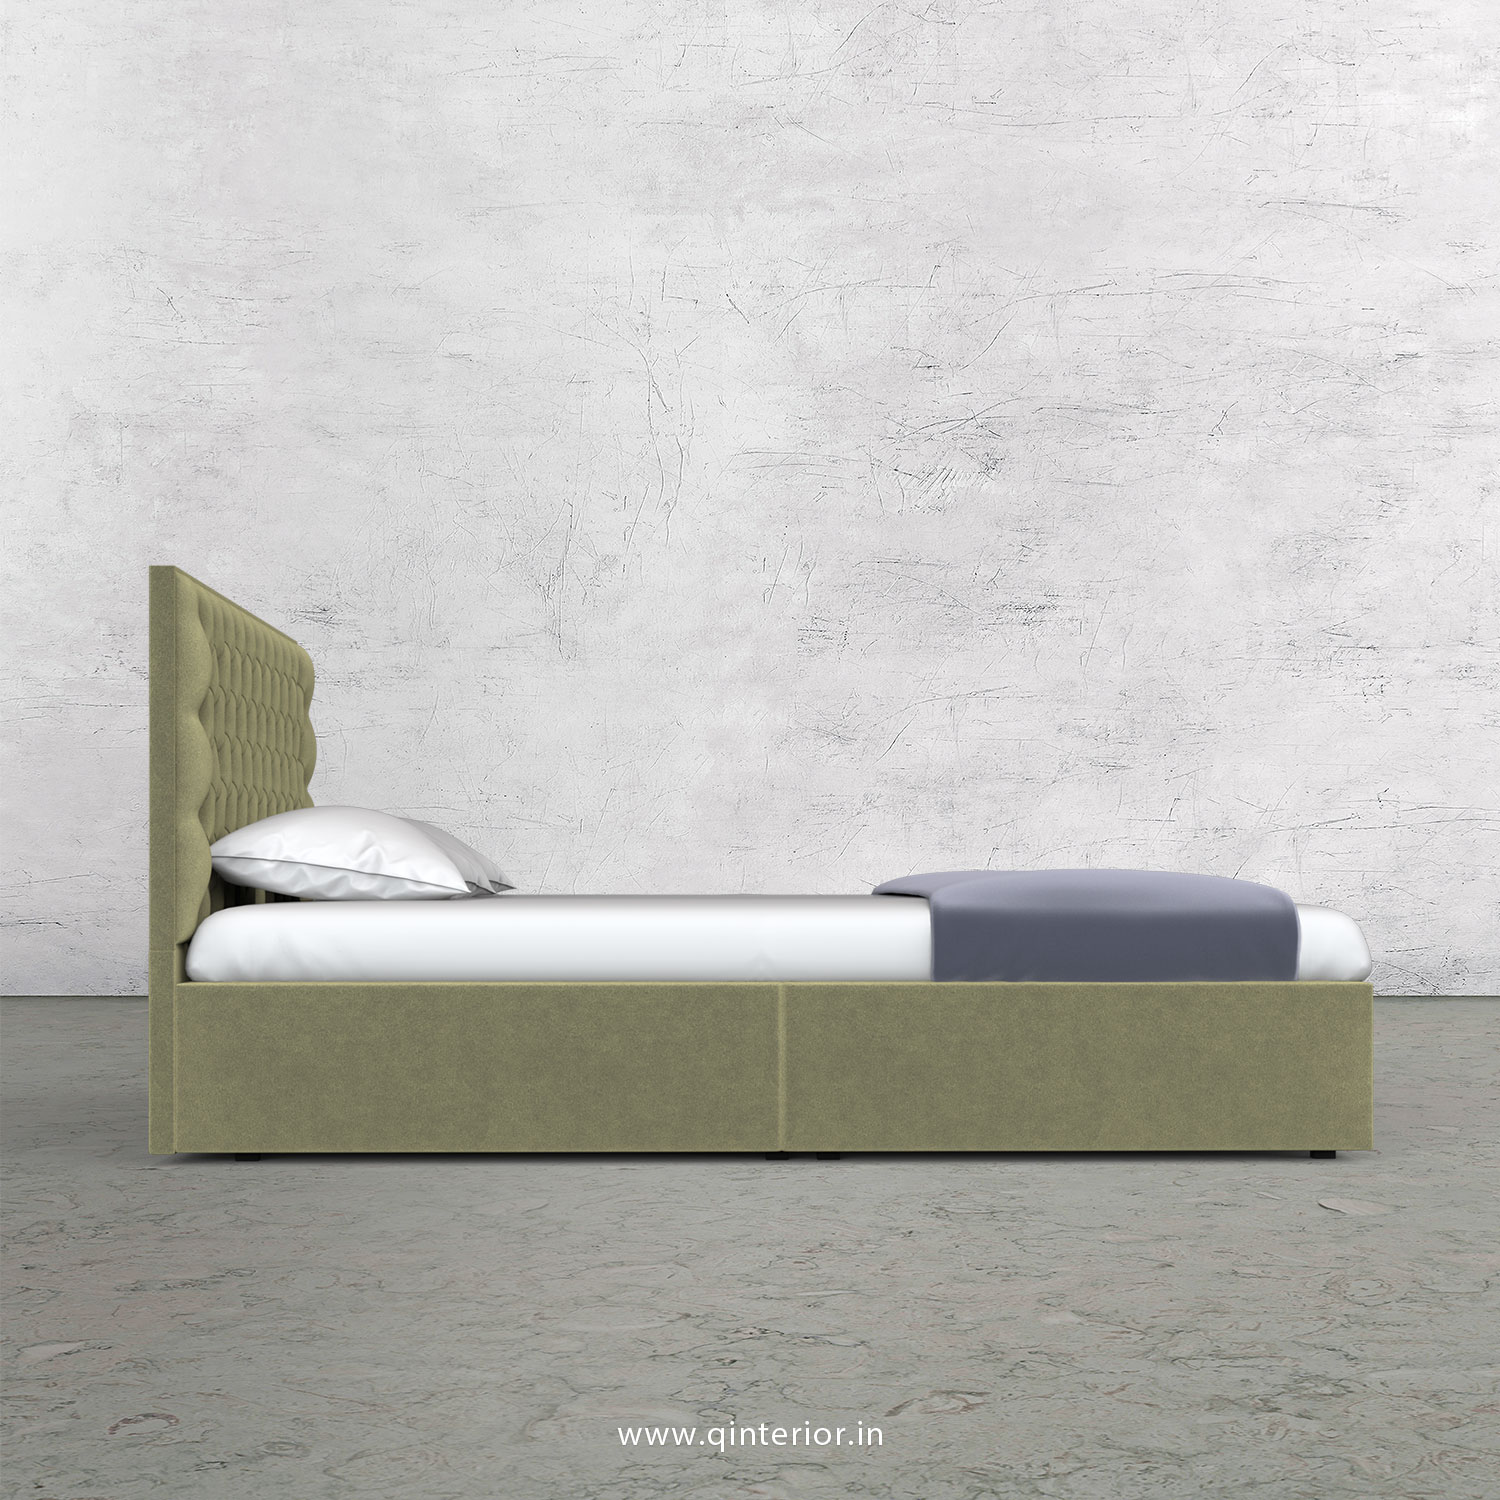 Orion Queen Storage Bed in Velvet Fabric - QBD001 VL04